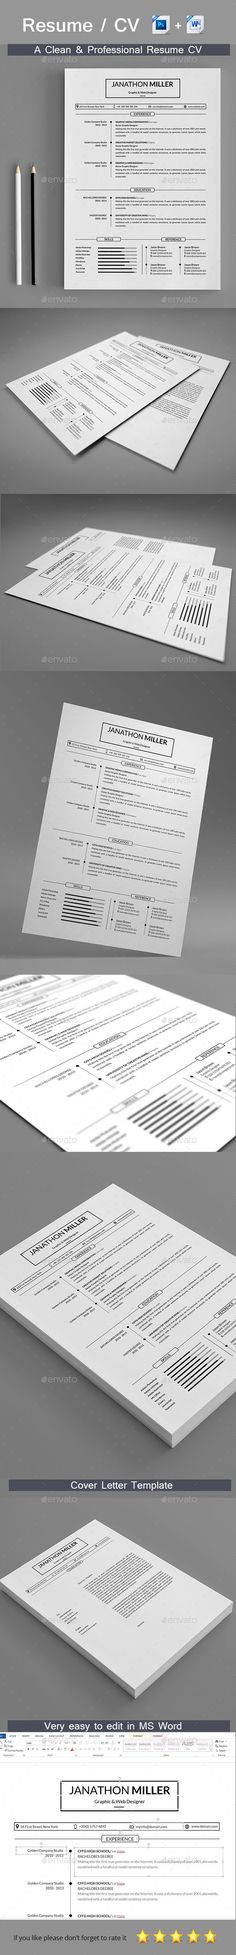 Word Resume Template - Resume Template for Word + Cover Letter - cover letter microsoft word